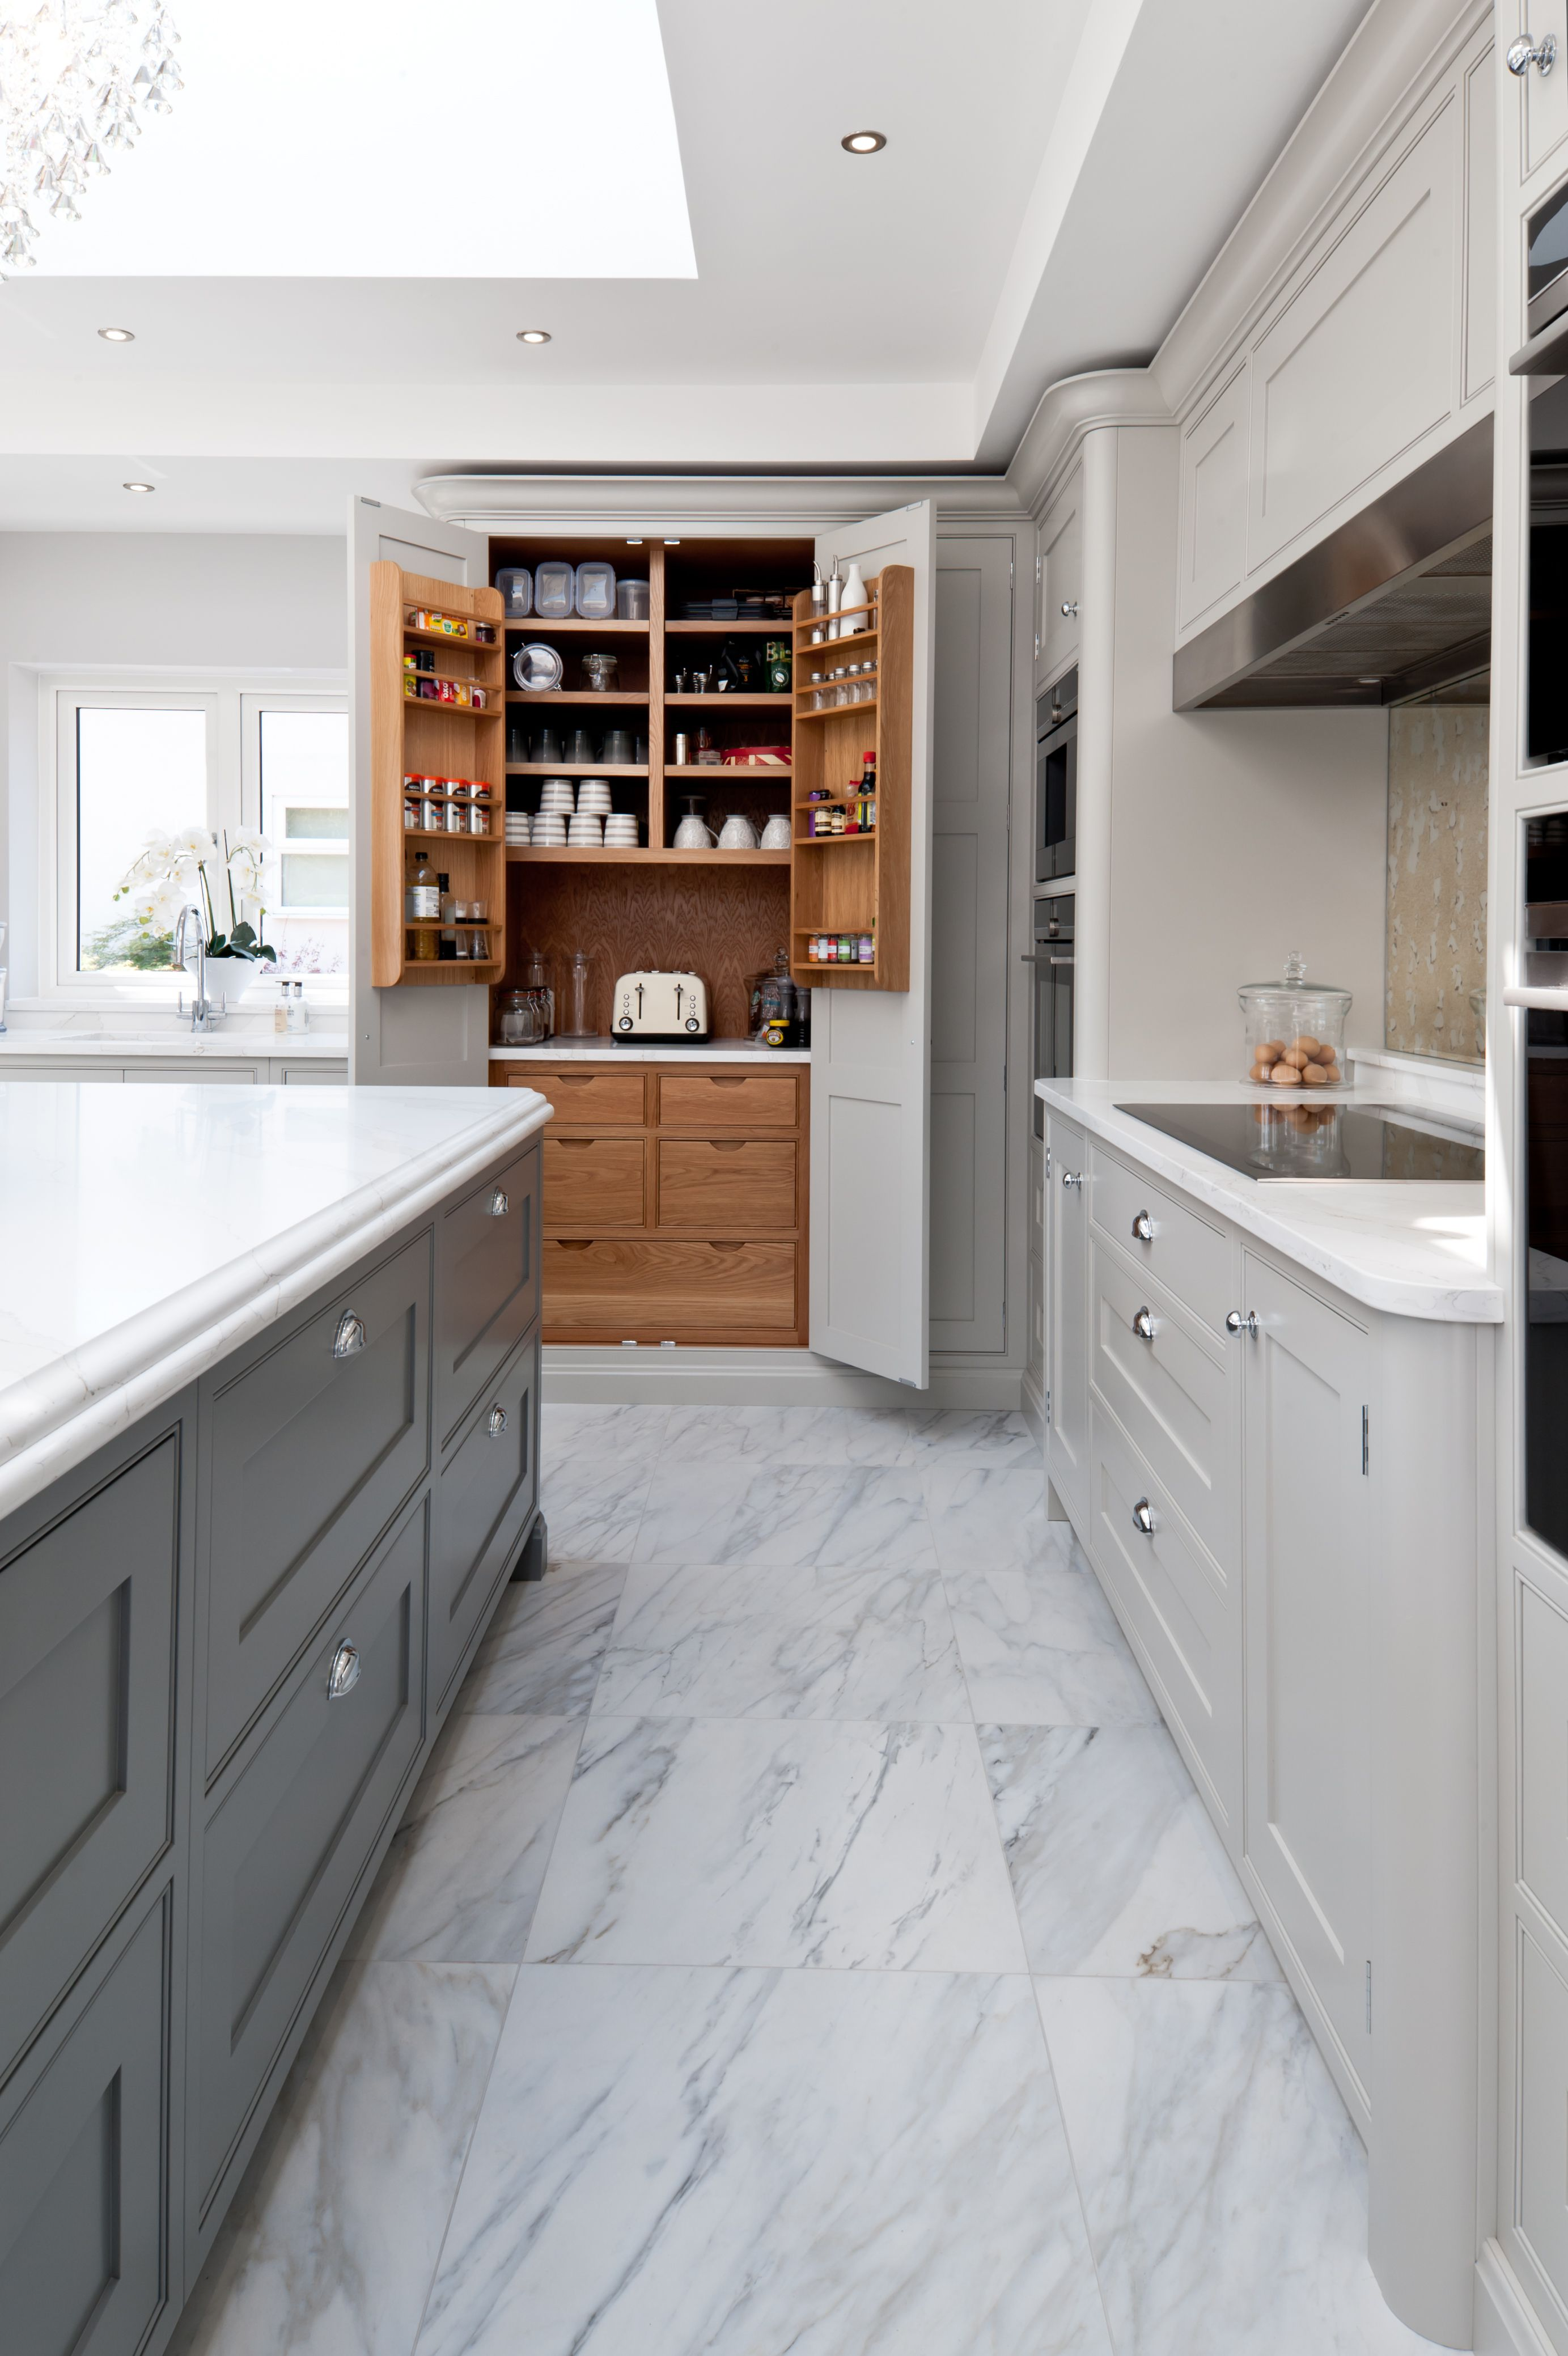 Truly Bespoke And Wonderfully Elegant Our Malaz House Kitchen Is Quite The Statement Living Space And Ju Bespoke Kitchen Design Kitchen Handmade Kitchens